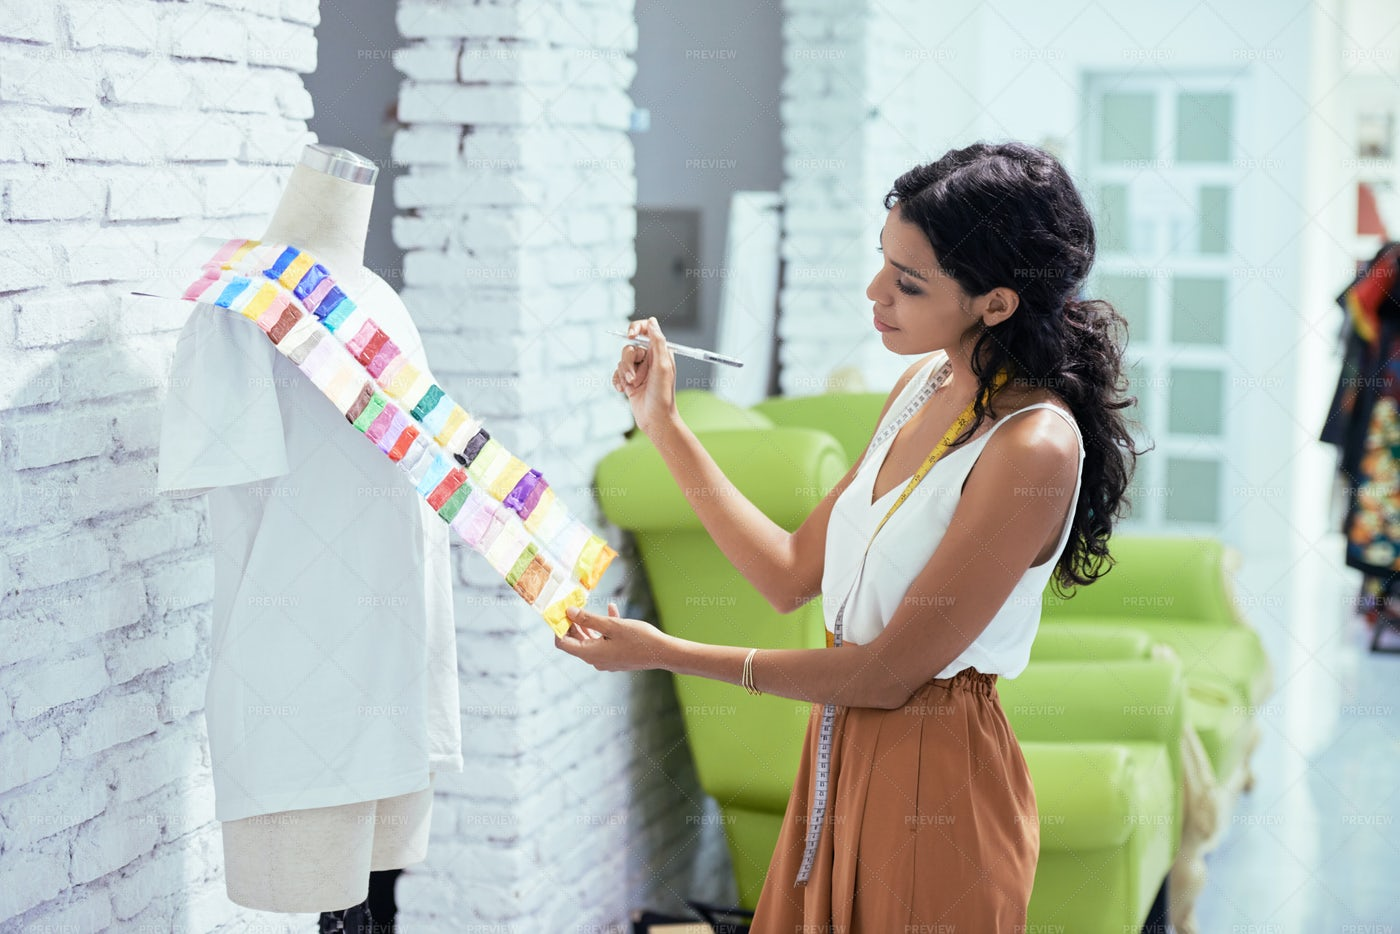 Seamstress Choosing Fabric For New: Stock Photos